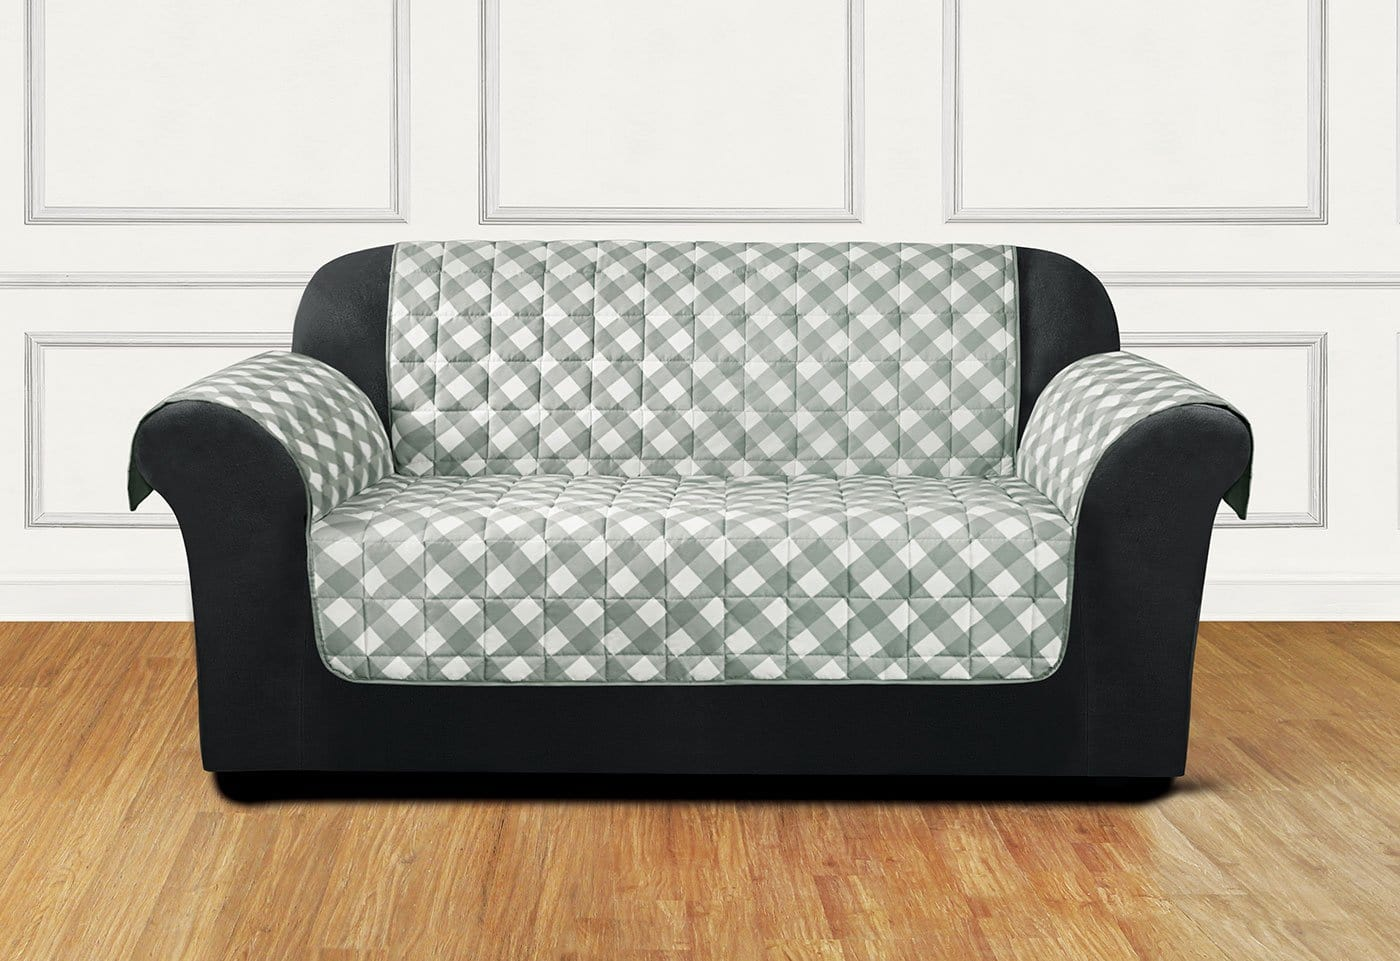 Furniture Flair Loveseat Furniture Cover 100% Polyester Pet Furniture Cover Machine Washable - Loveseat / Gingham Plaid